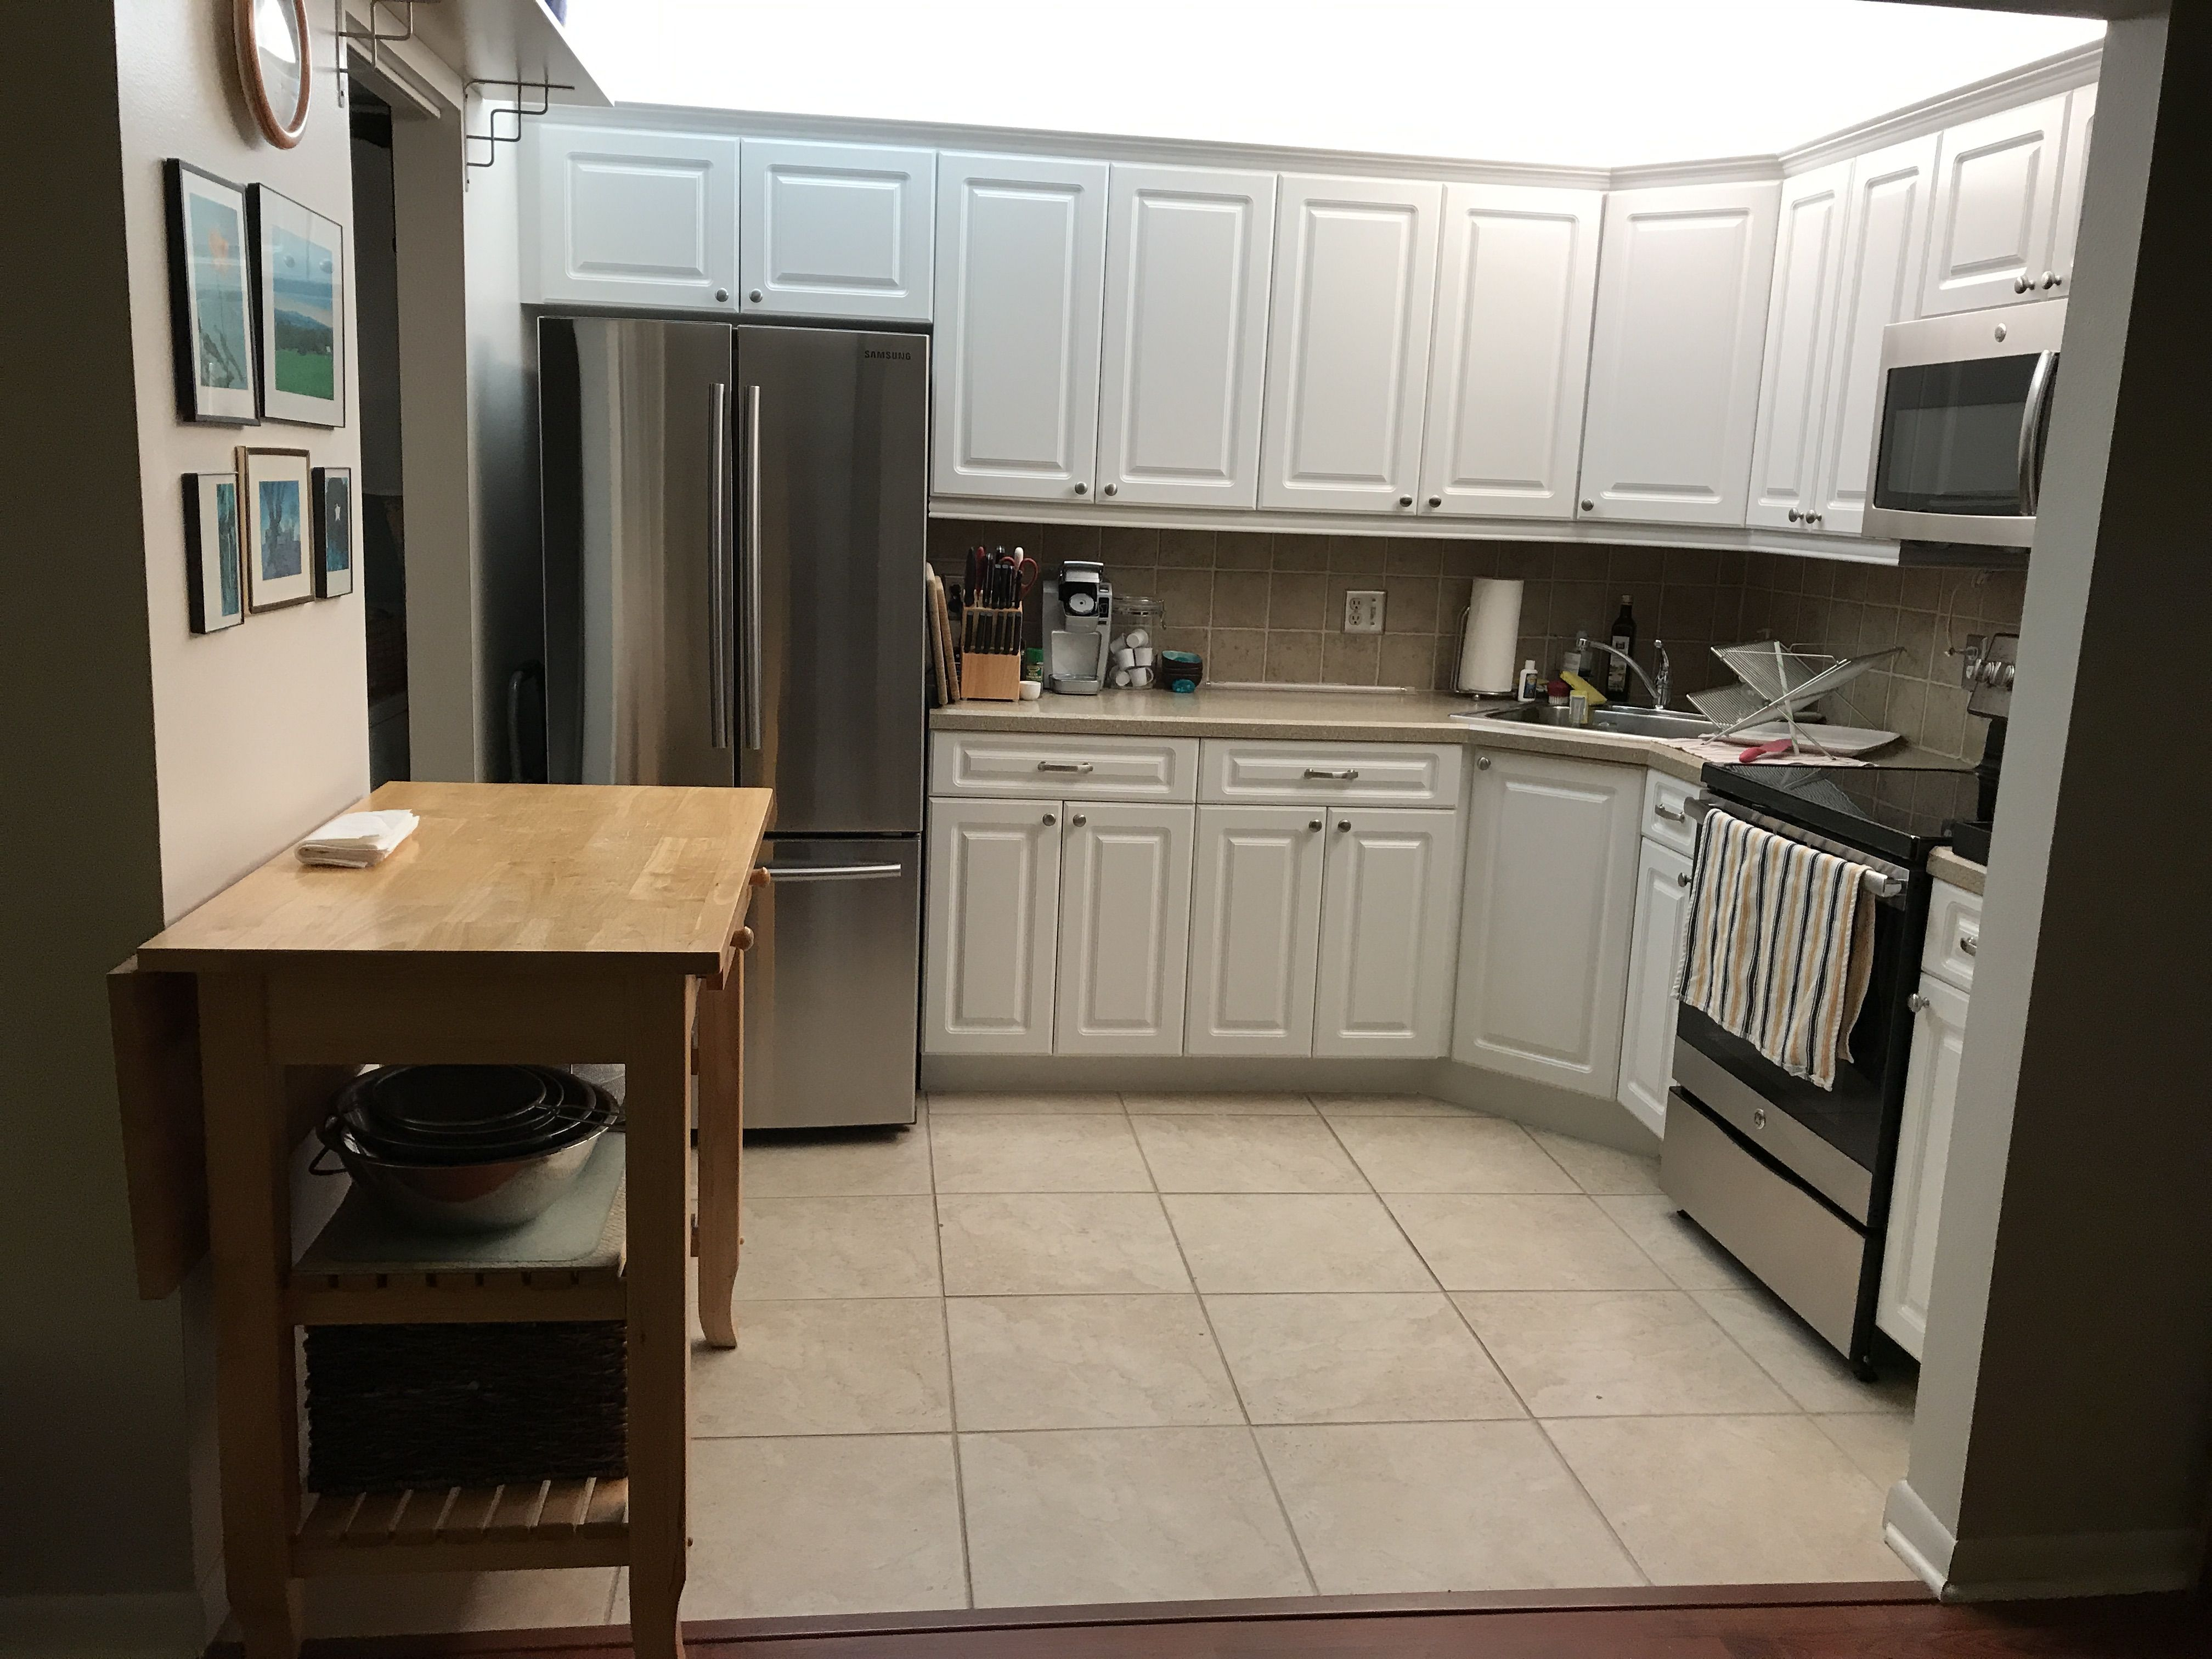 Painted thermofoil and got new appliances. Much